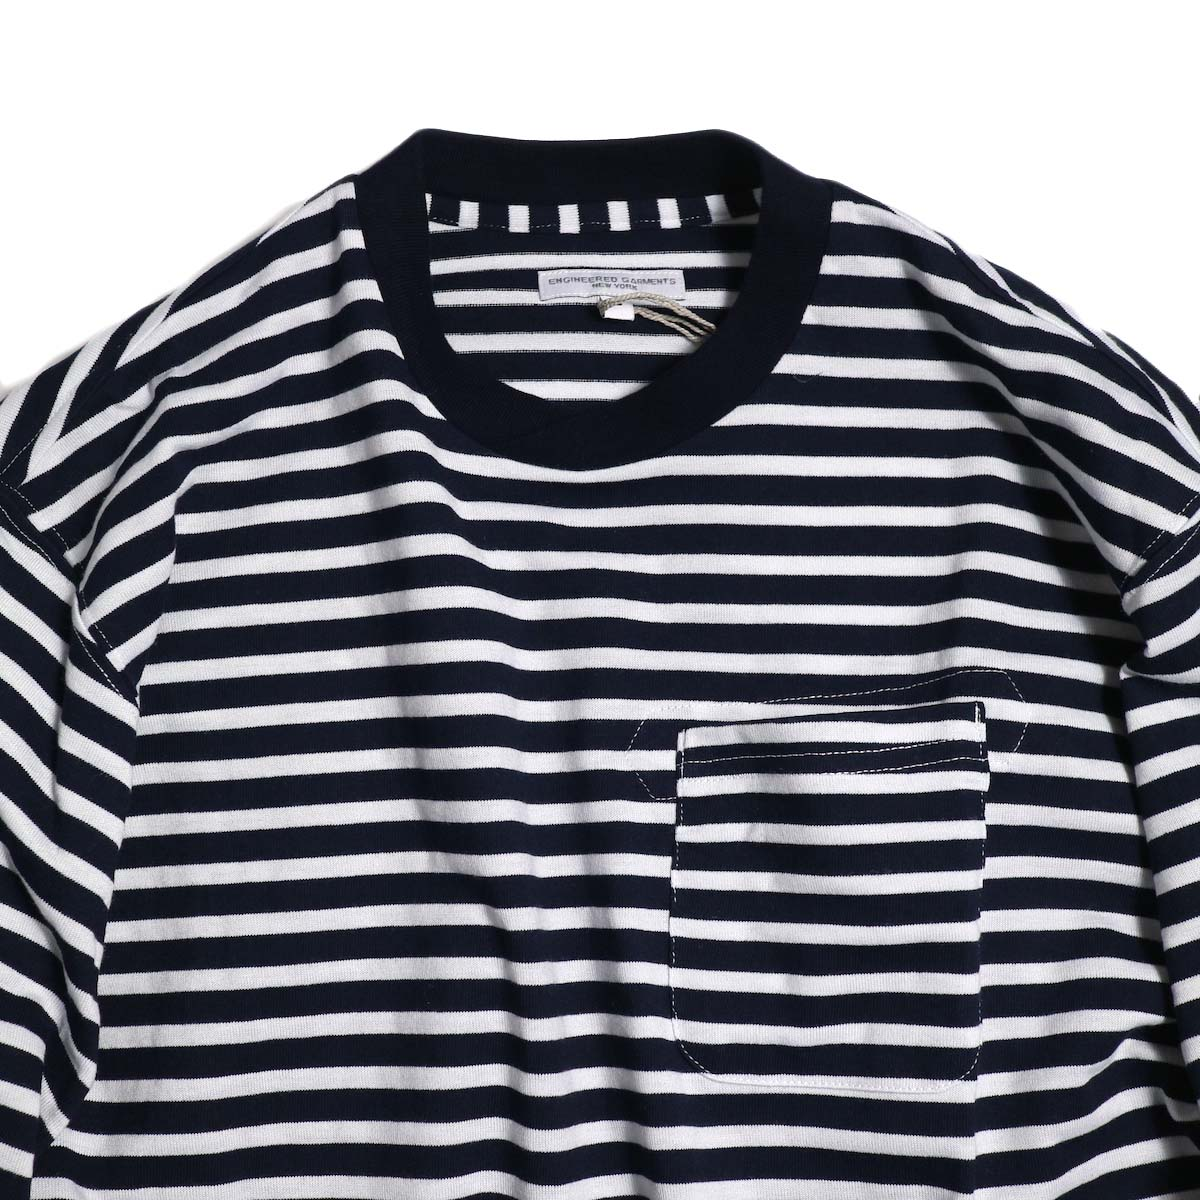 ENGINEERED GARMENTS / Long Sleeve Crew -Pc St. Jersey (Navy/White) 首元